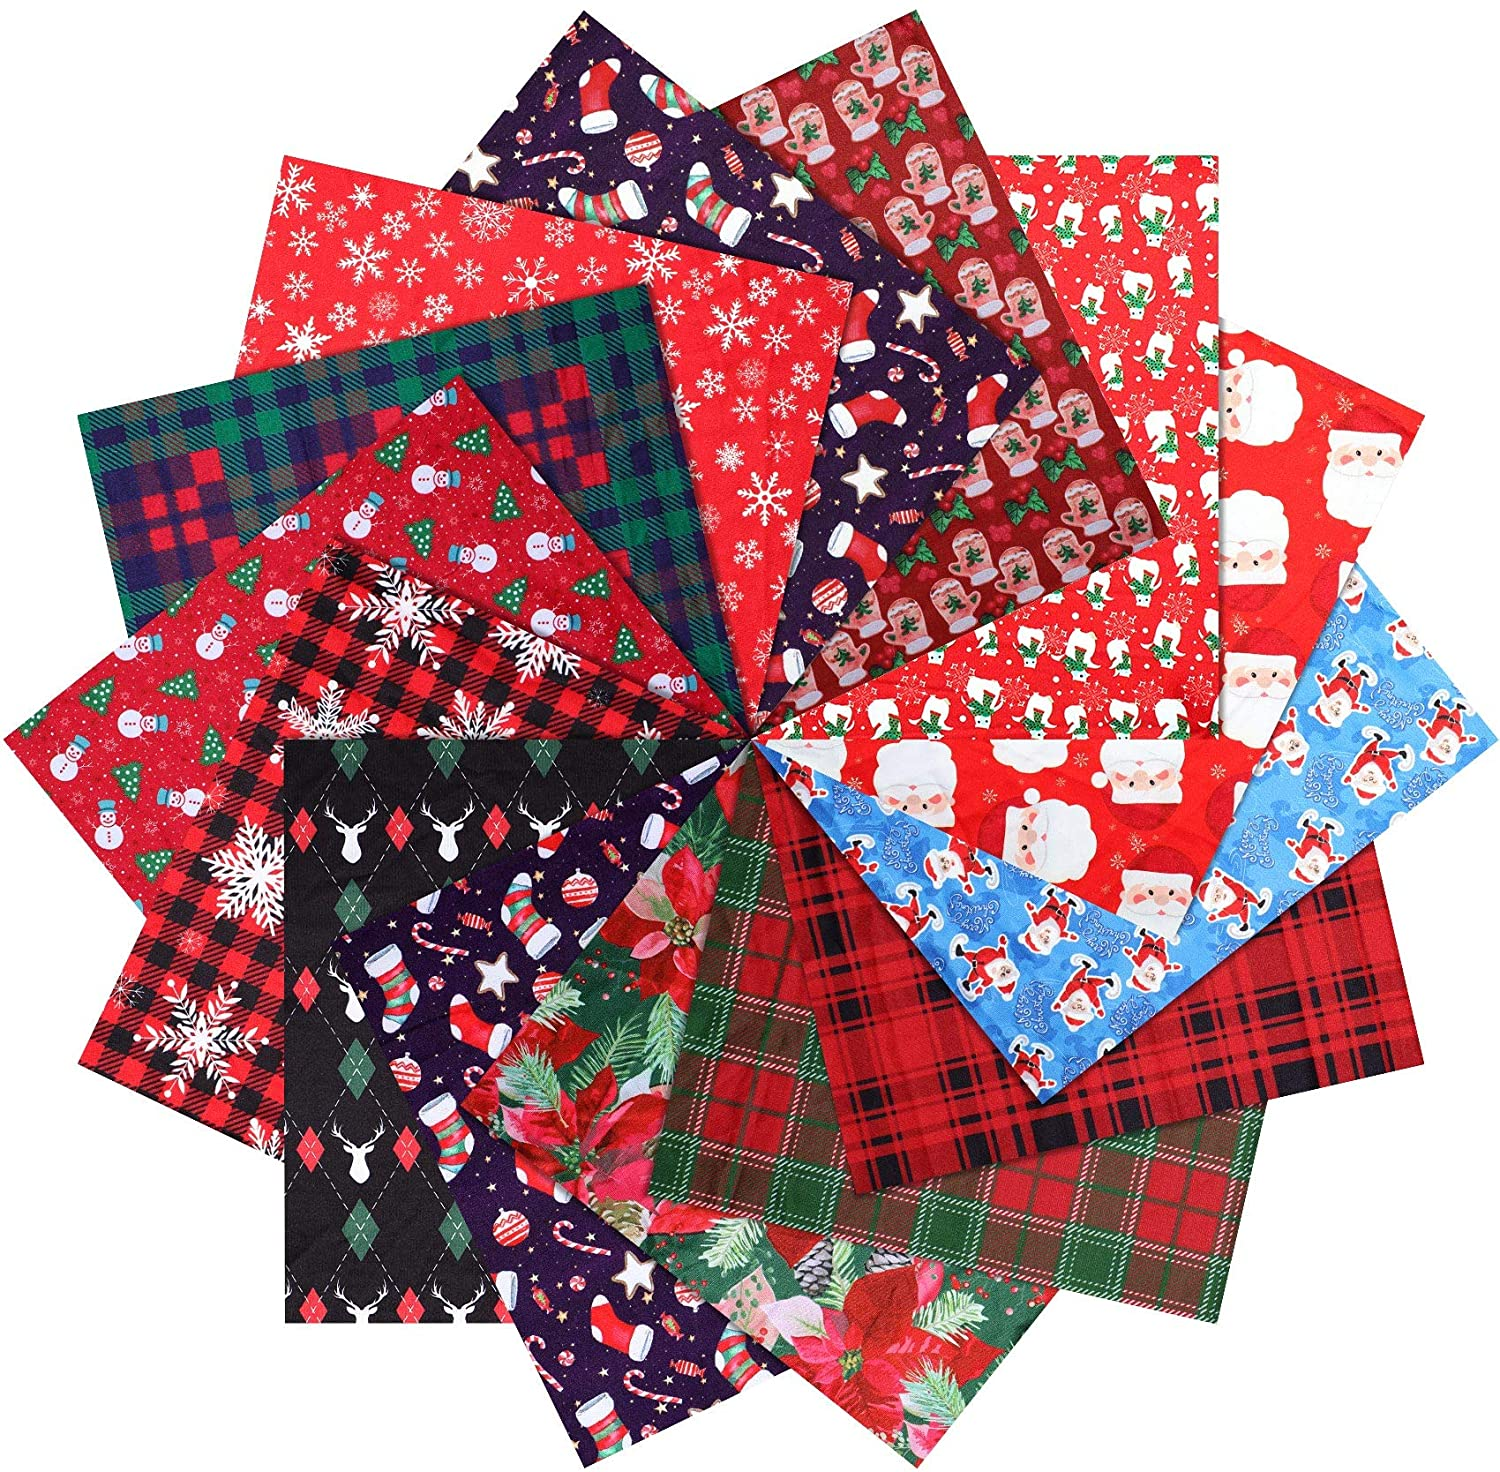 28 Pieces Christmas Fabric Cotton Bundle Xmas Quilting Fabric Patchwork Plaid Check Fabric Fat Quarter Precut Fabric Scraps Christmas Tree Santa Claus Snowman Fabric for Sewing Crafting 7.8 x 9.8 Inch